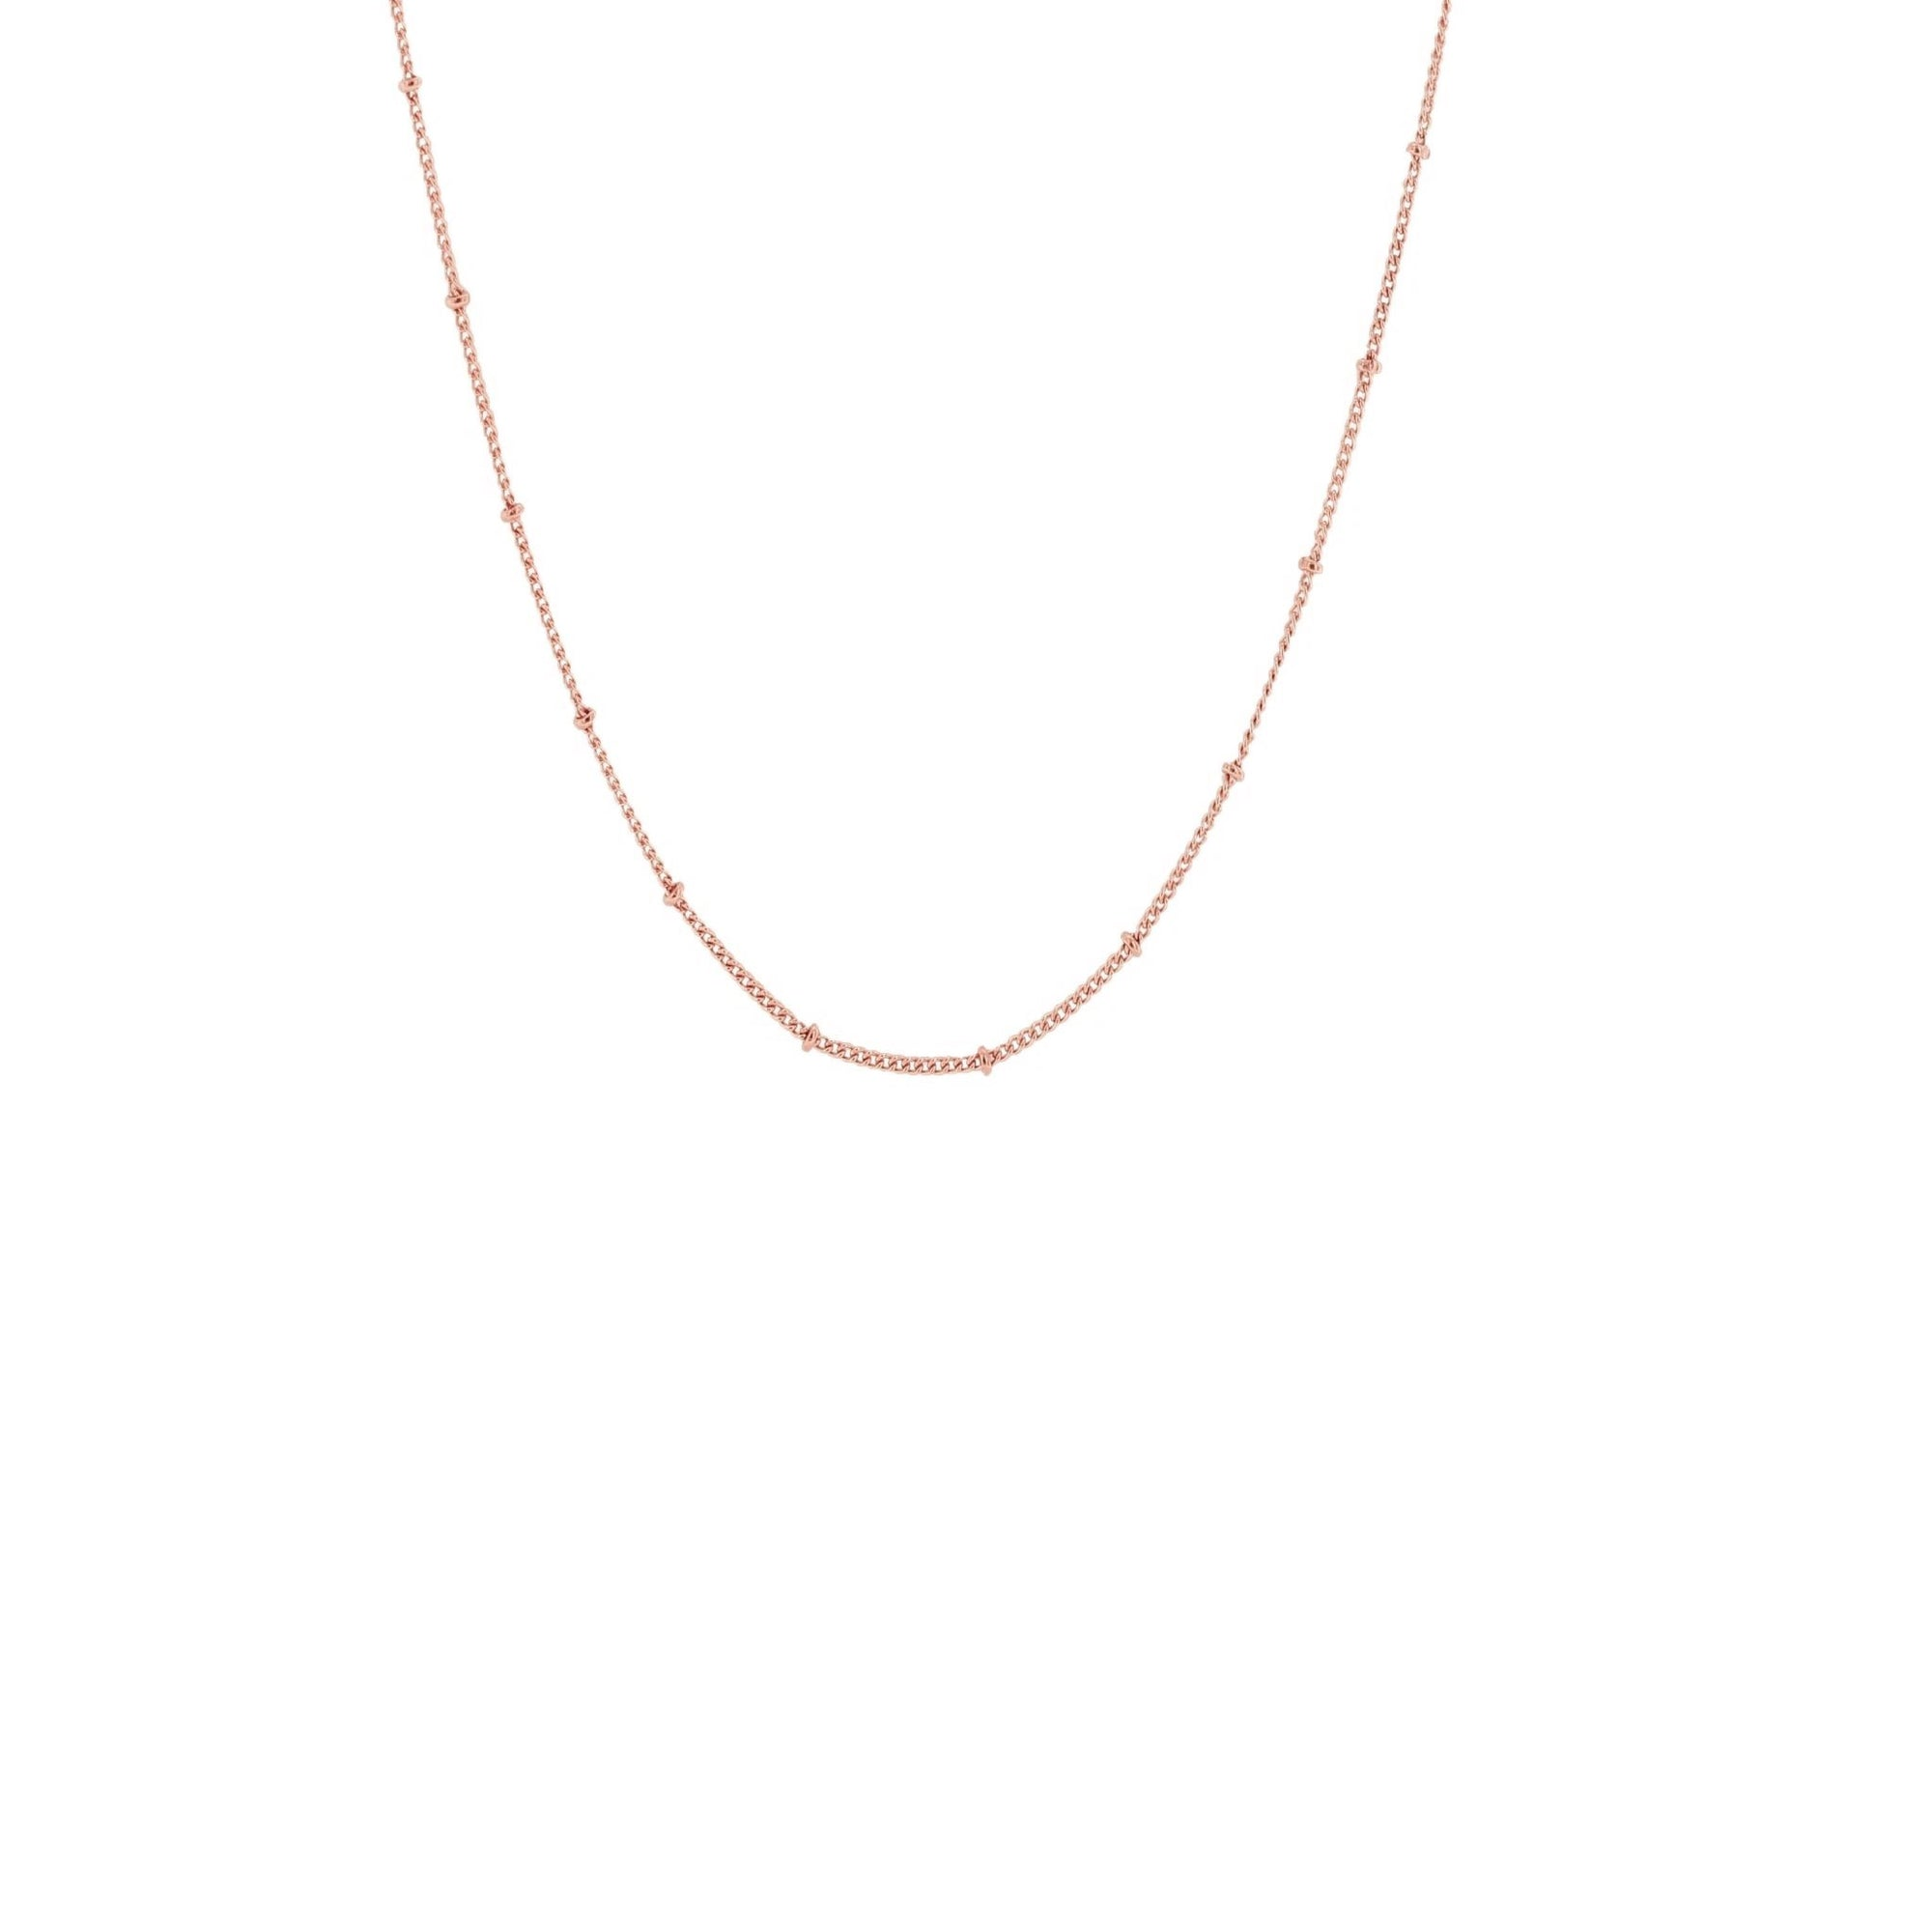 "CHARMING 14-17"" SHORT BEADED NECKLACE ROSE GOLD - SO PRETTY CARA COTTER"